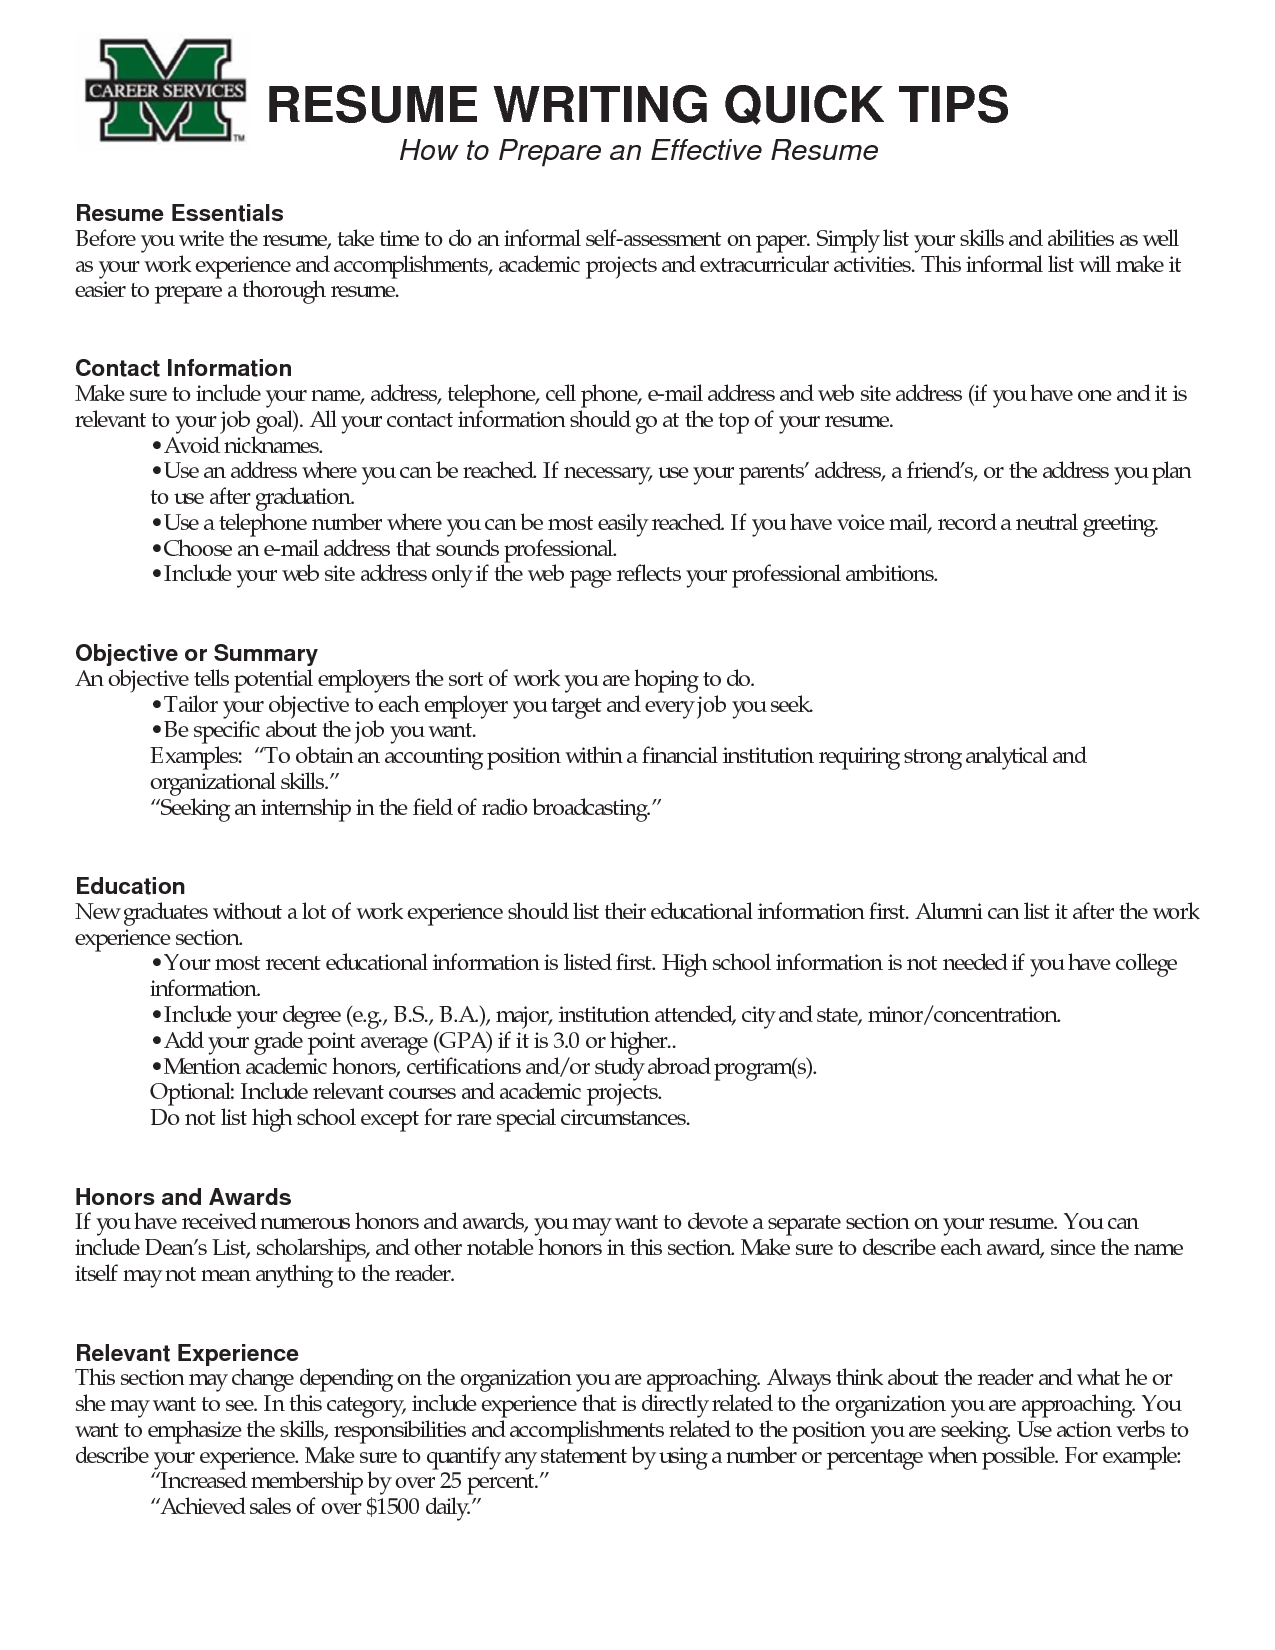 Skills Section On Resume Beauteous Tips Effective Resume Writing Loseyourlovewriting A Resume Cover Design Inspiration